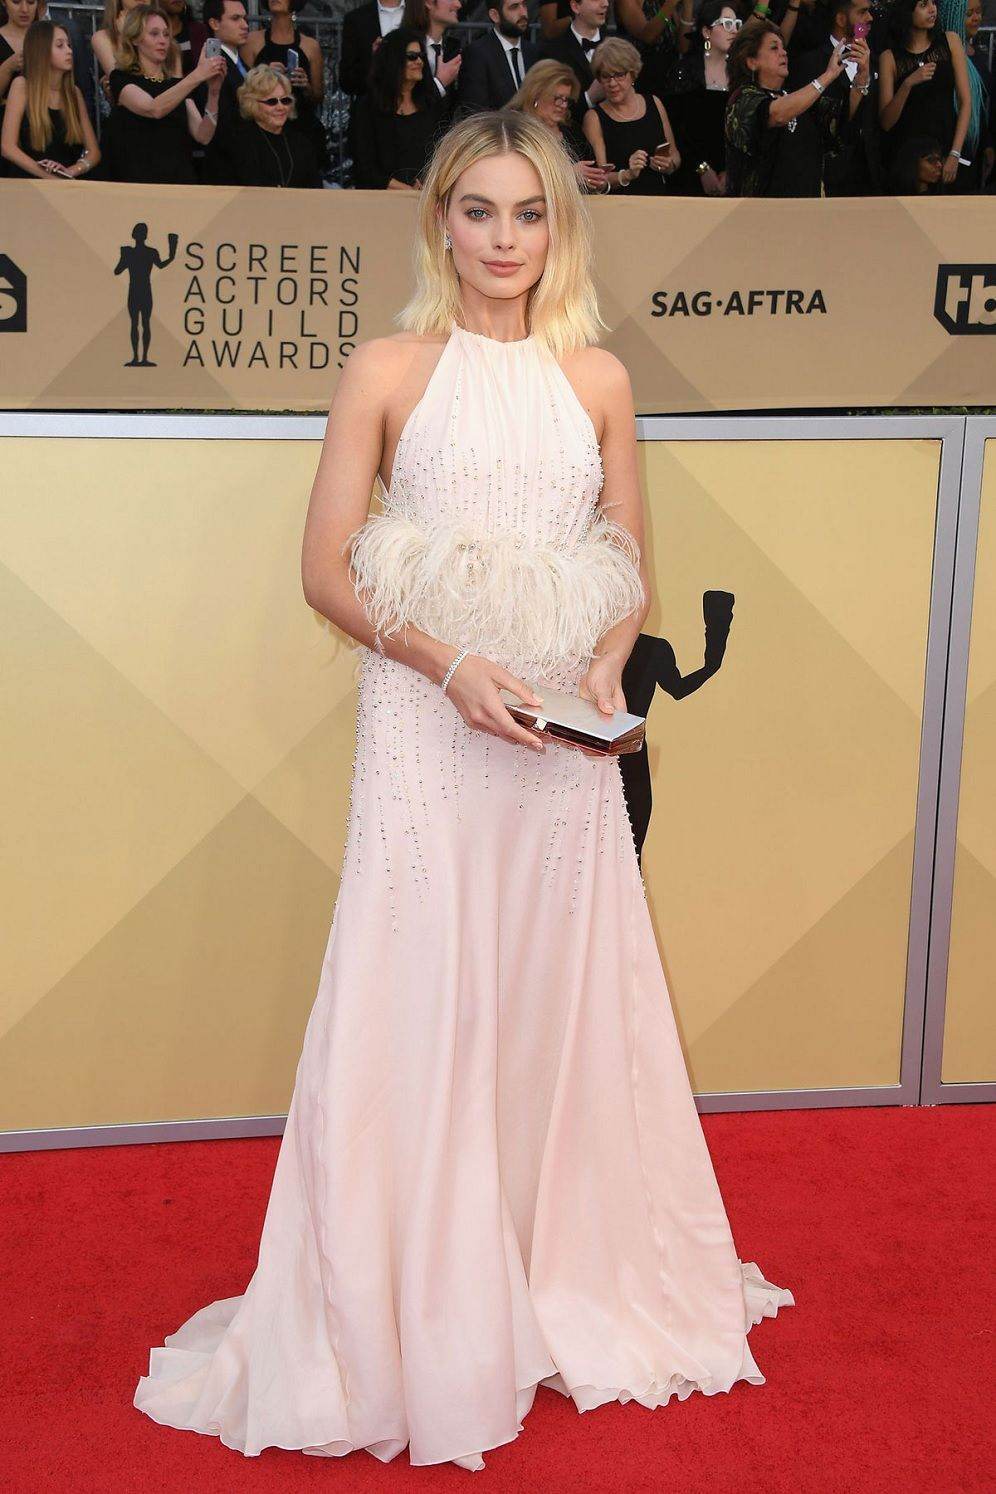 Margot Robbie at the 24th Annual Screen Actors Guild (SAG